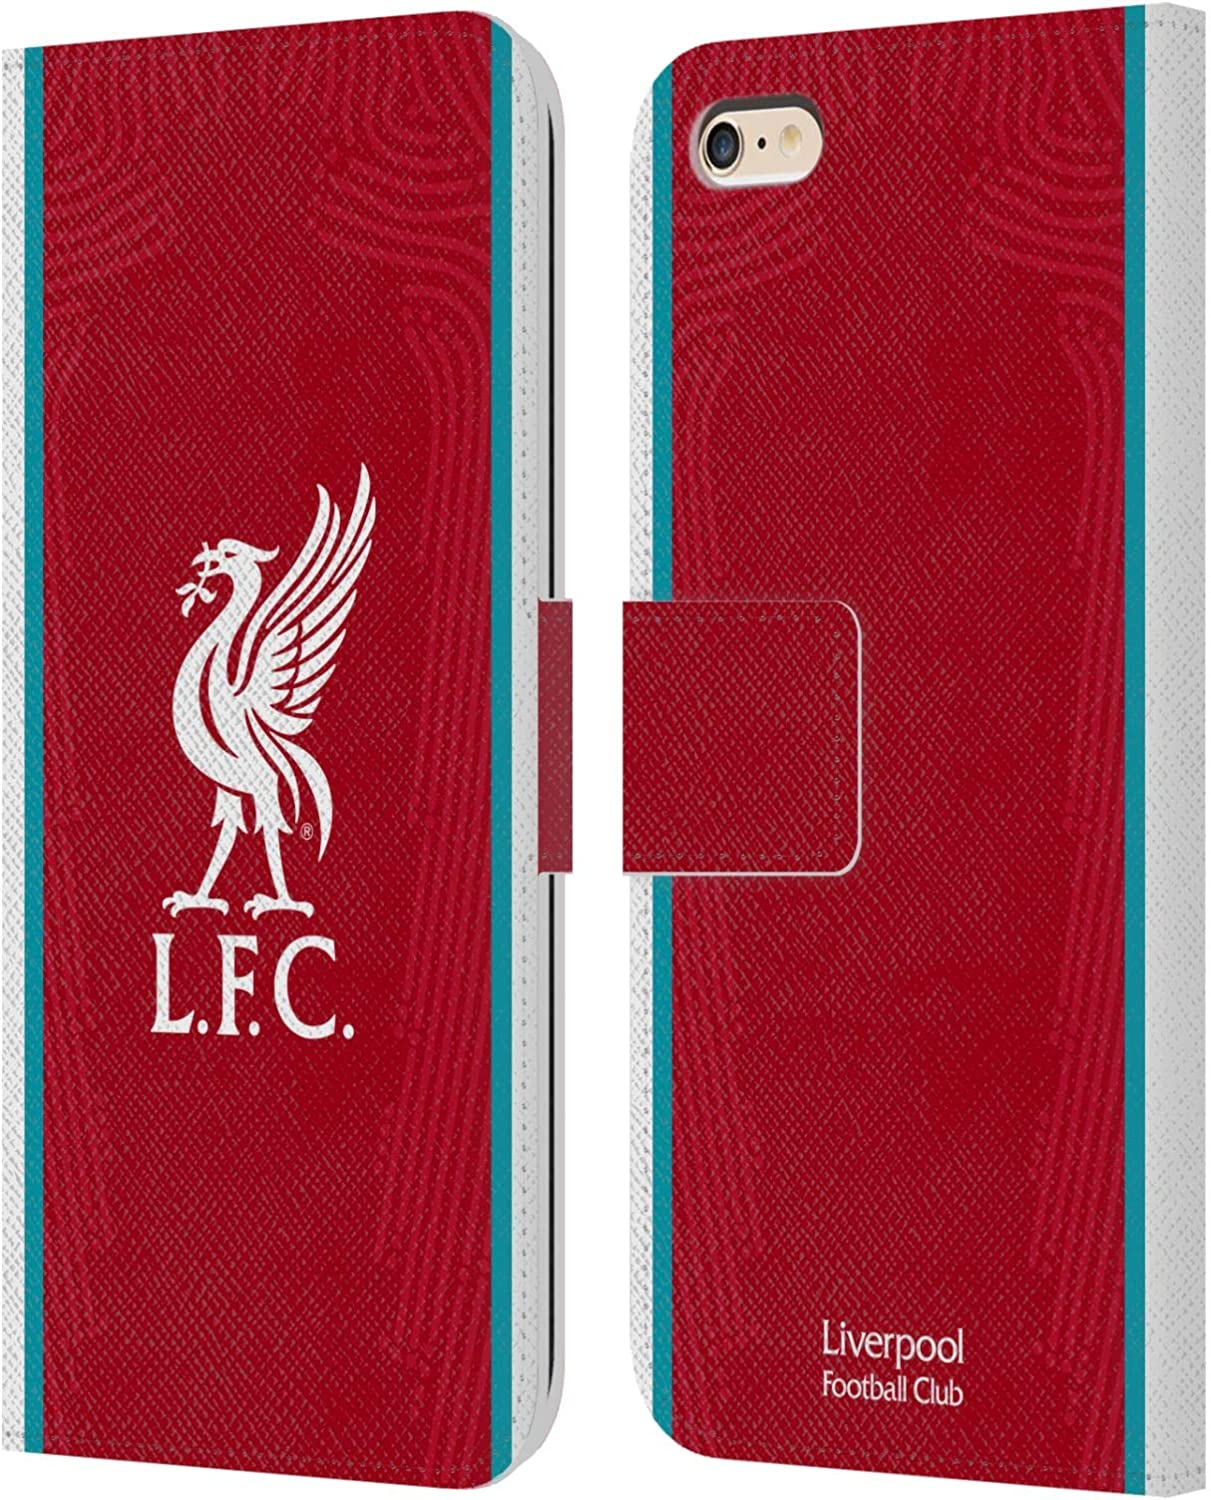 iPhone 5s iPhone SE 2016 Official Liverpool Football Club Home 2020//21 PU Leather Book Wallet Case Cover Compatible For Apple iPhone 5